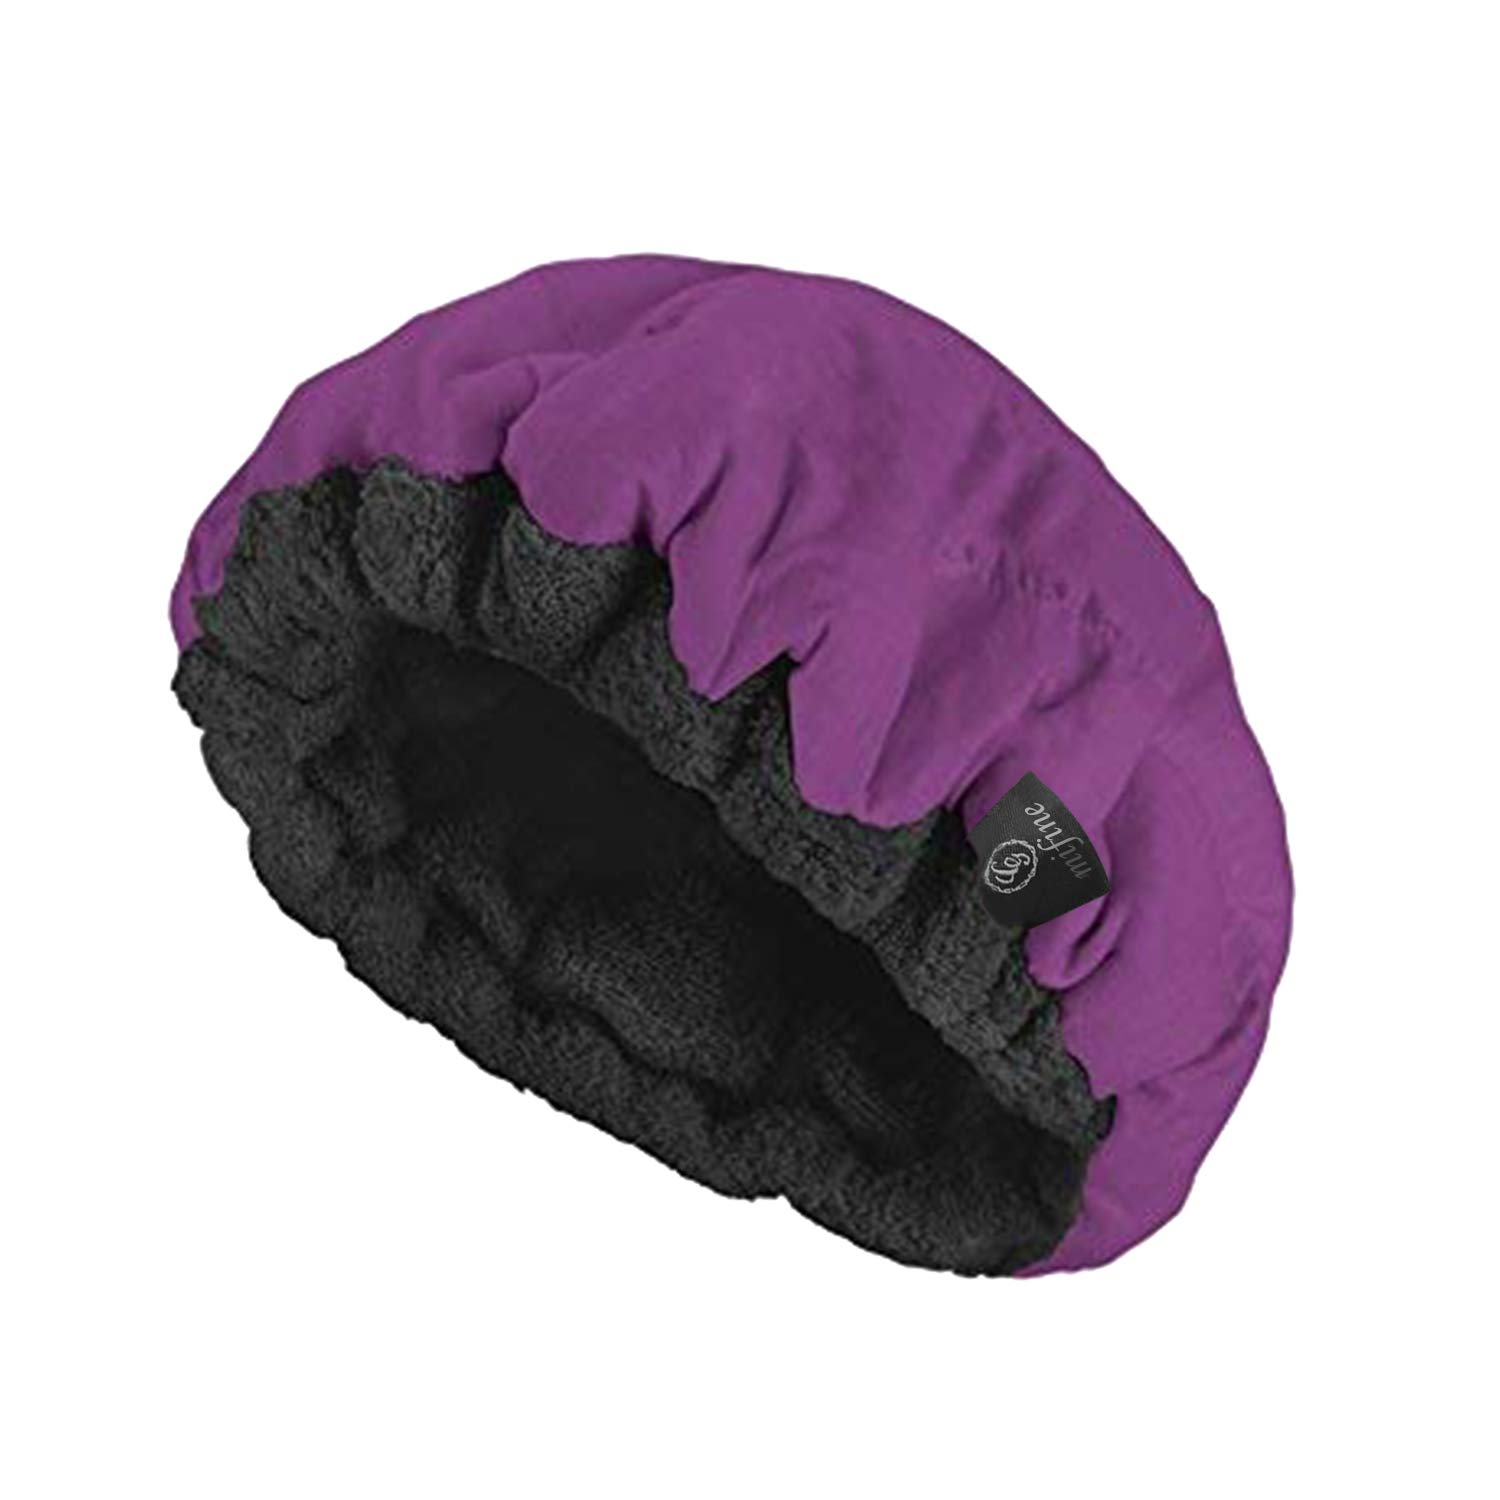 Cordless Deep Conditioning Heat Cap - Microwavable Heat Cap for Deep Conditioning Hair Therapy, 100% Natural Cotton, Flaxseed Seed Interior for Maximum Heat Retention (Purple)